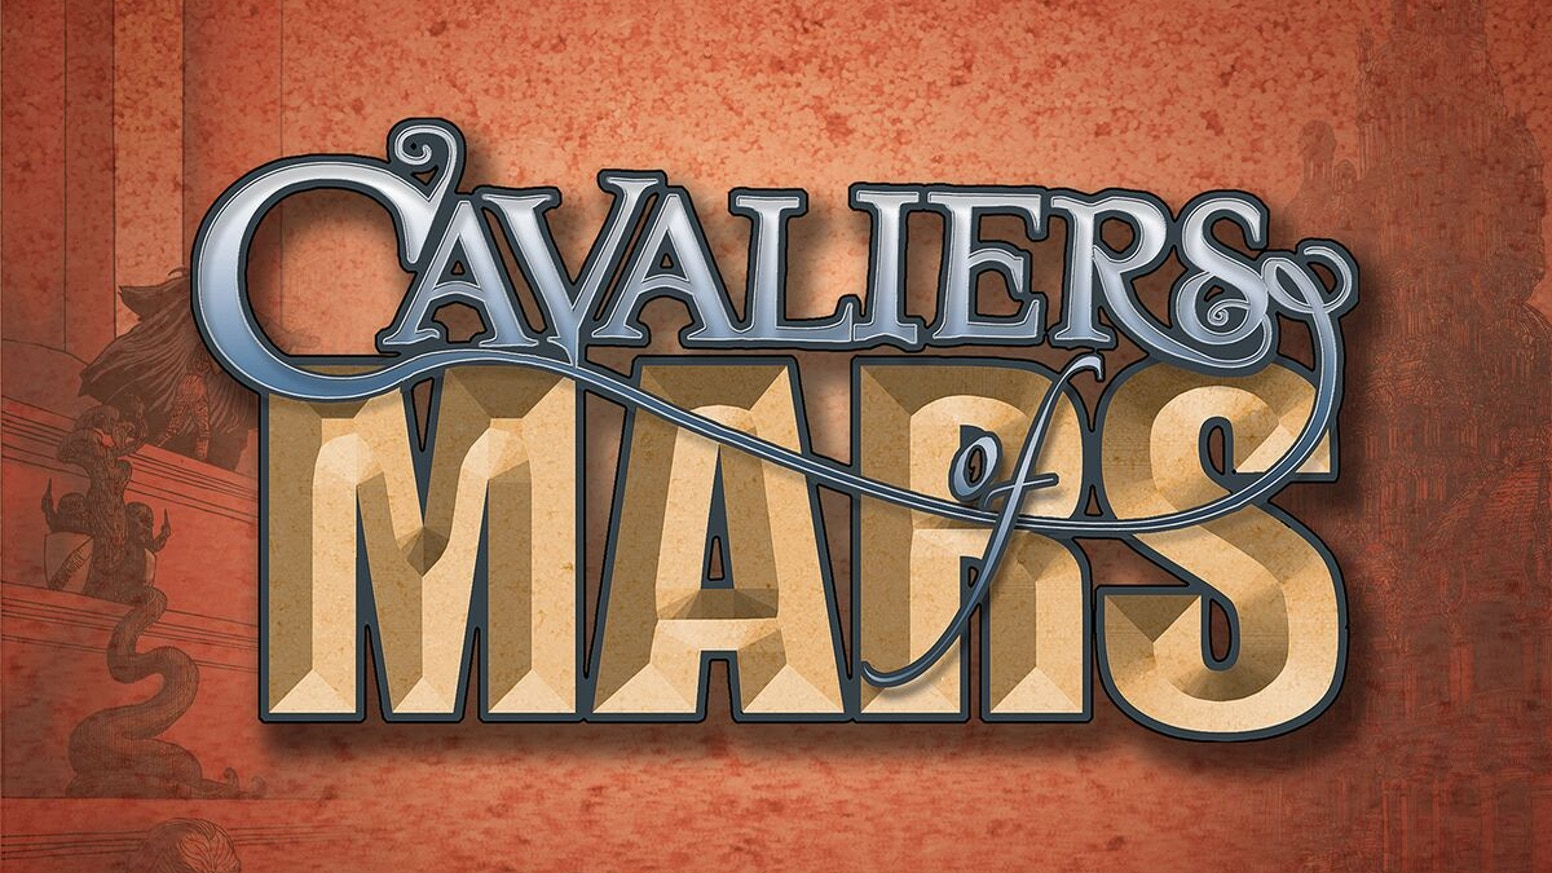 Cavaliers of Mars is now available for purchase!